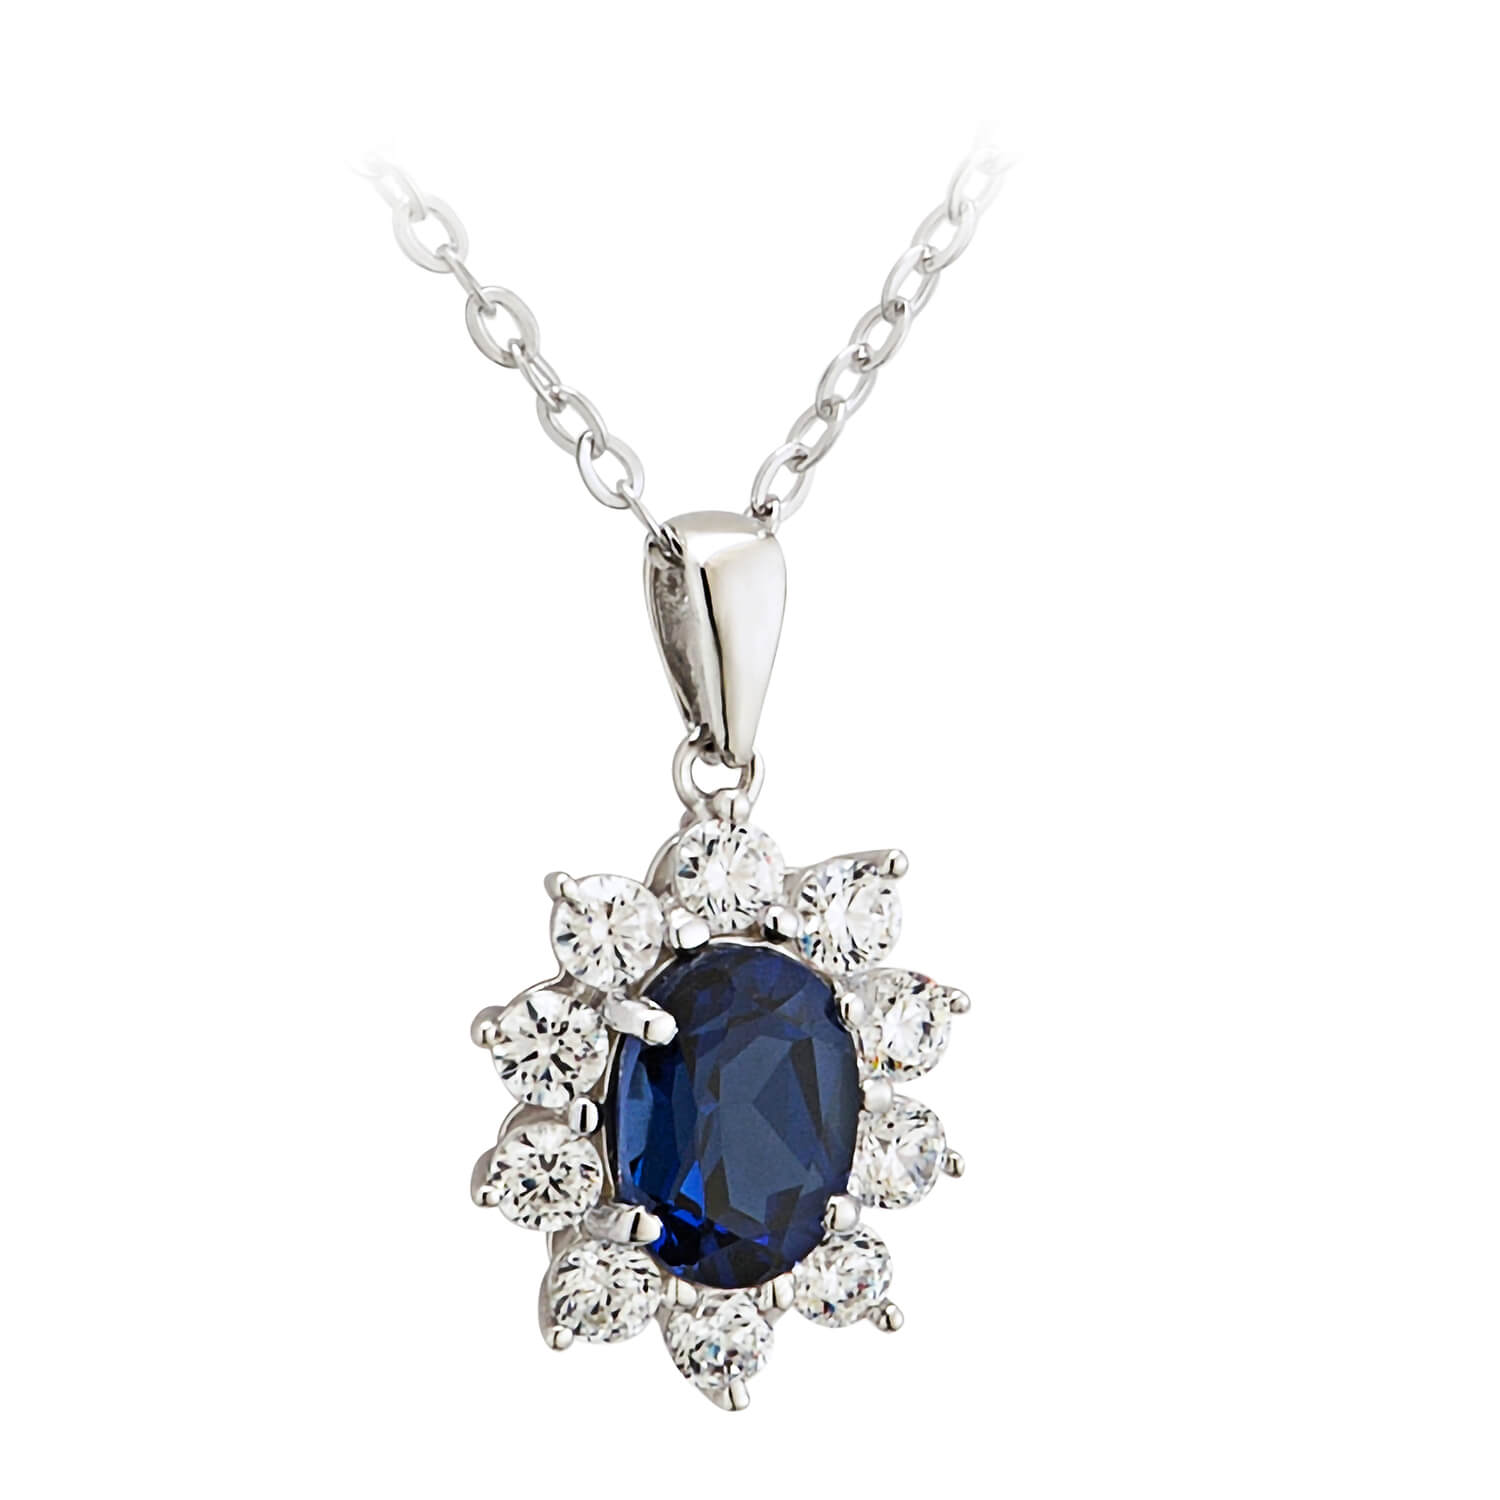 9ct White Gold Created Sapphire and Cubic Zirconia Pendant